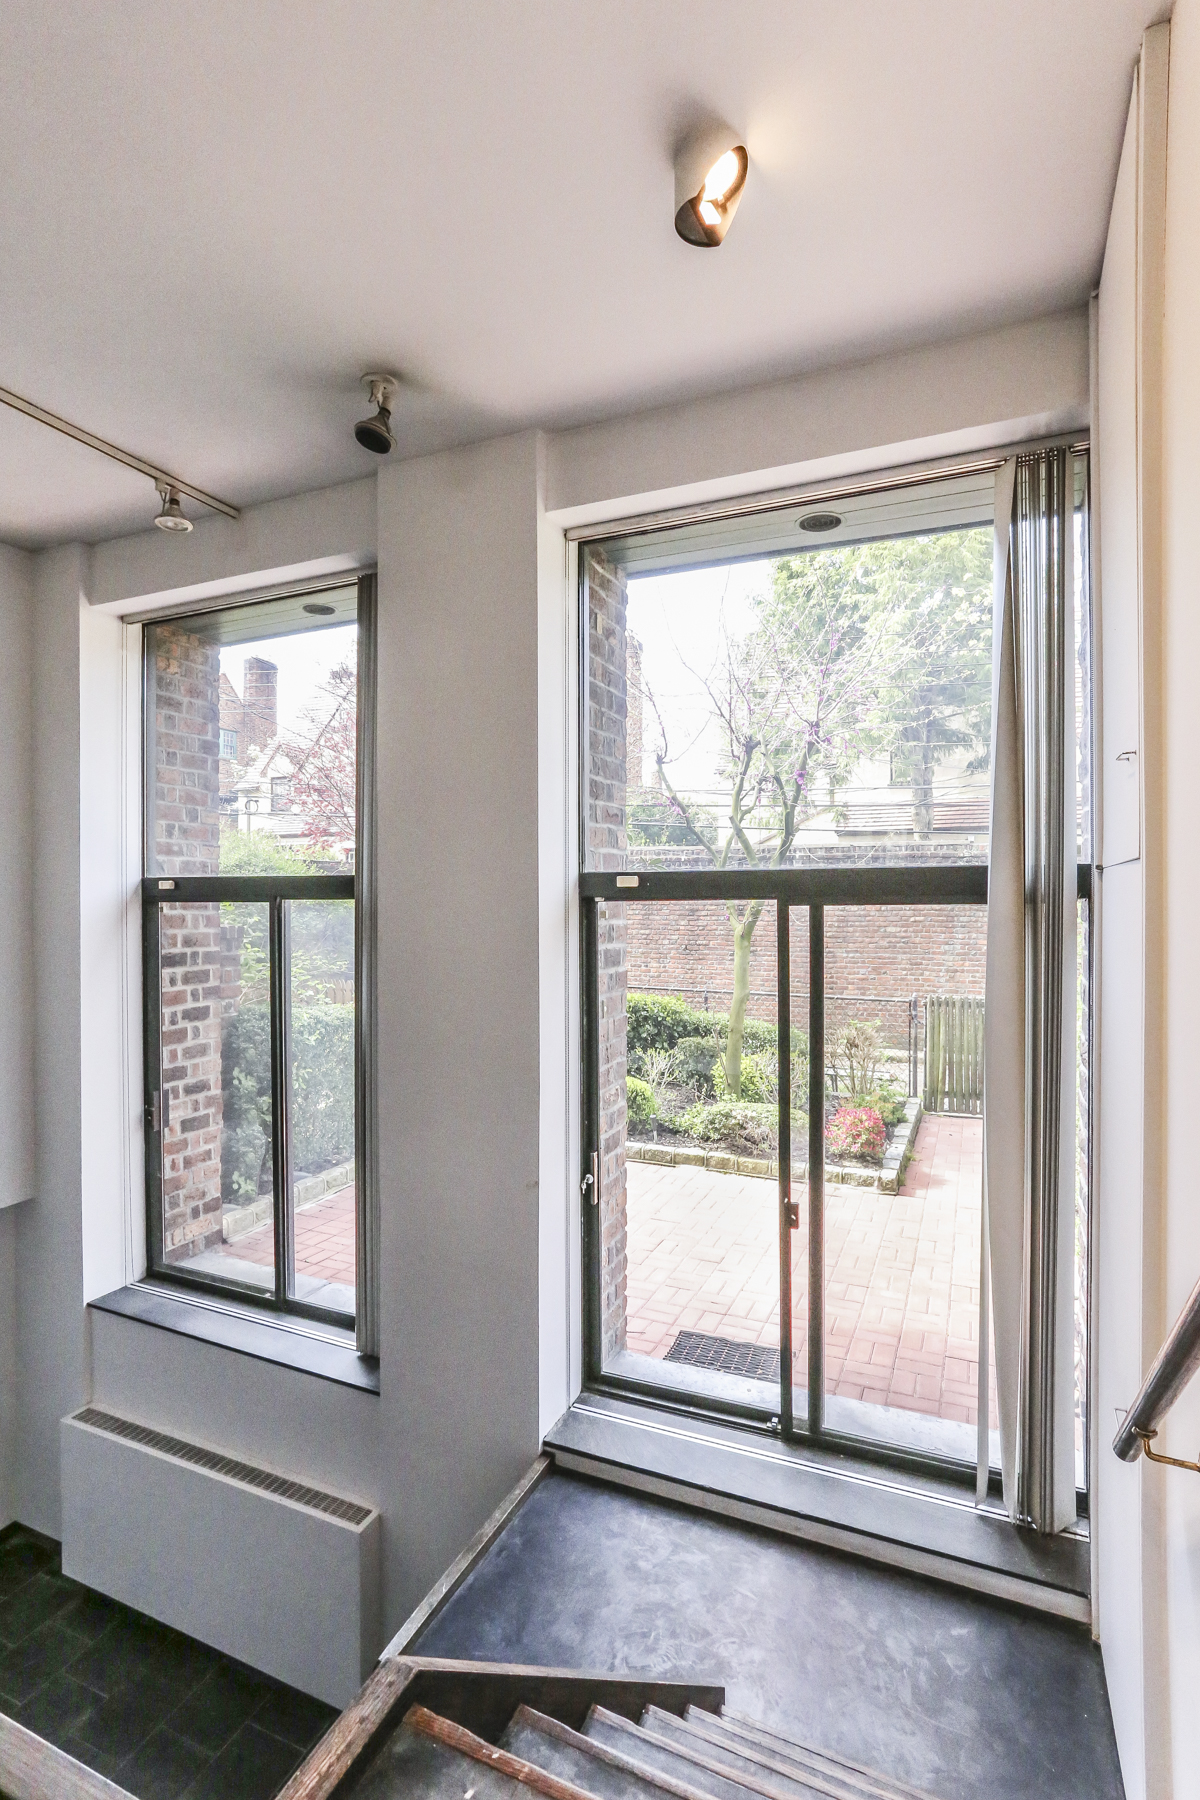 Additional photo for property listing at 39 INGRAM STREET FOREST HILLS GARDENS, NY  Forest Hills, Nueva York 11375 Estados Unidos